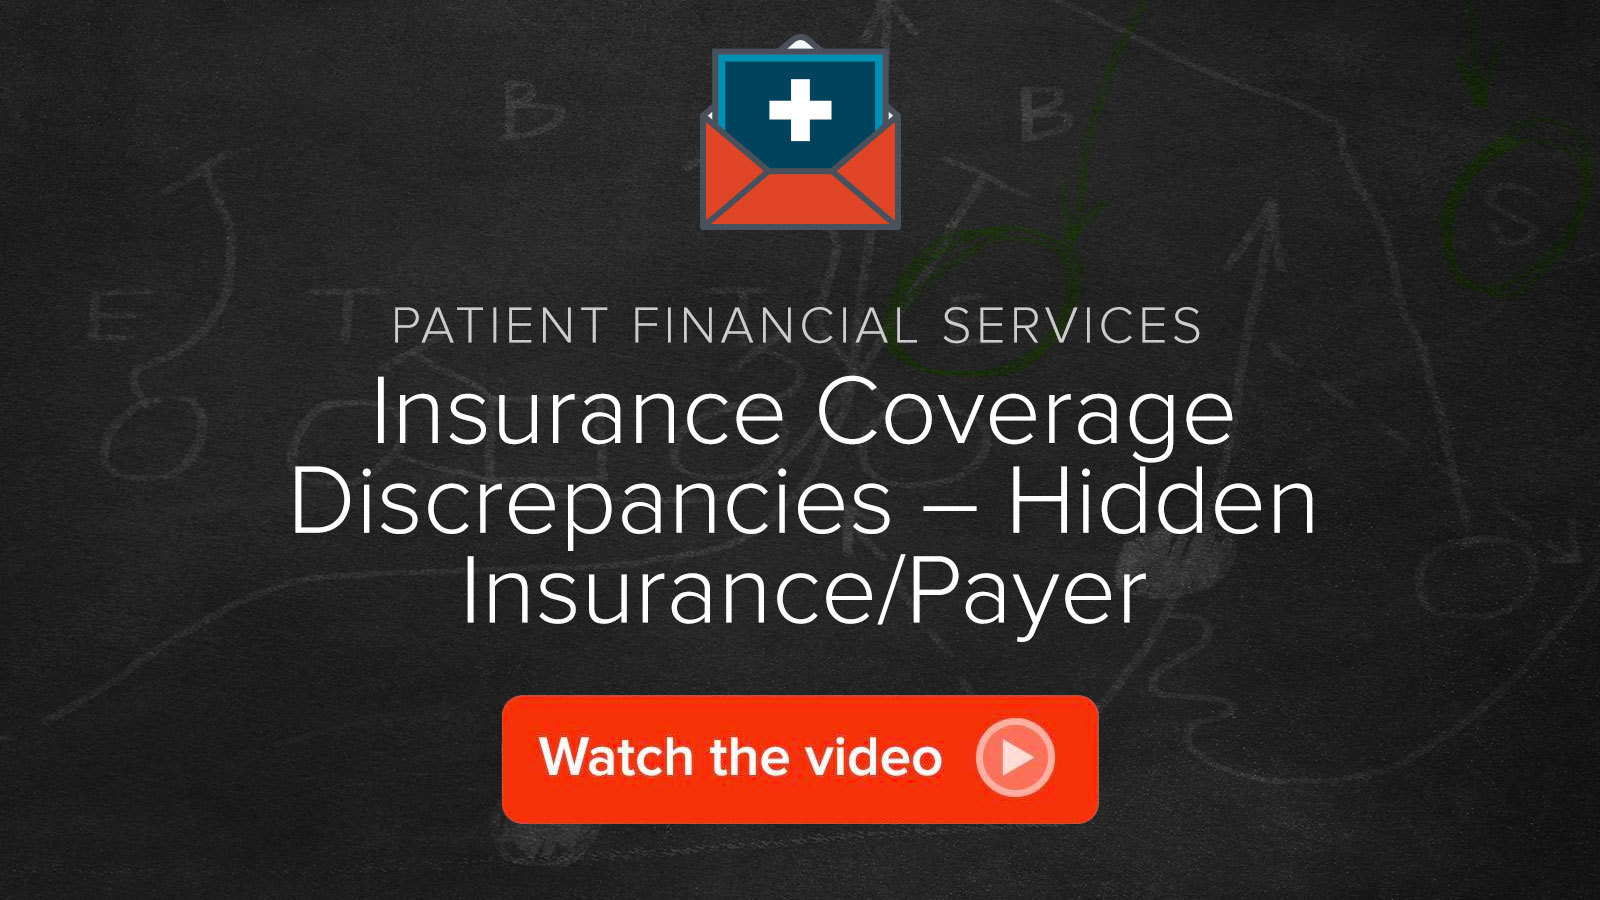 Watch the Insurance Coverage Discrepancies – Hidden Insurance/Payer  video